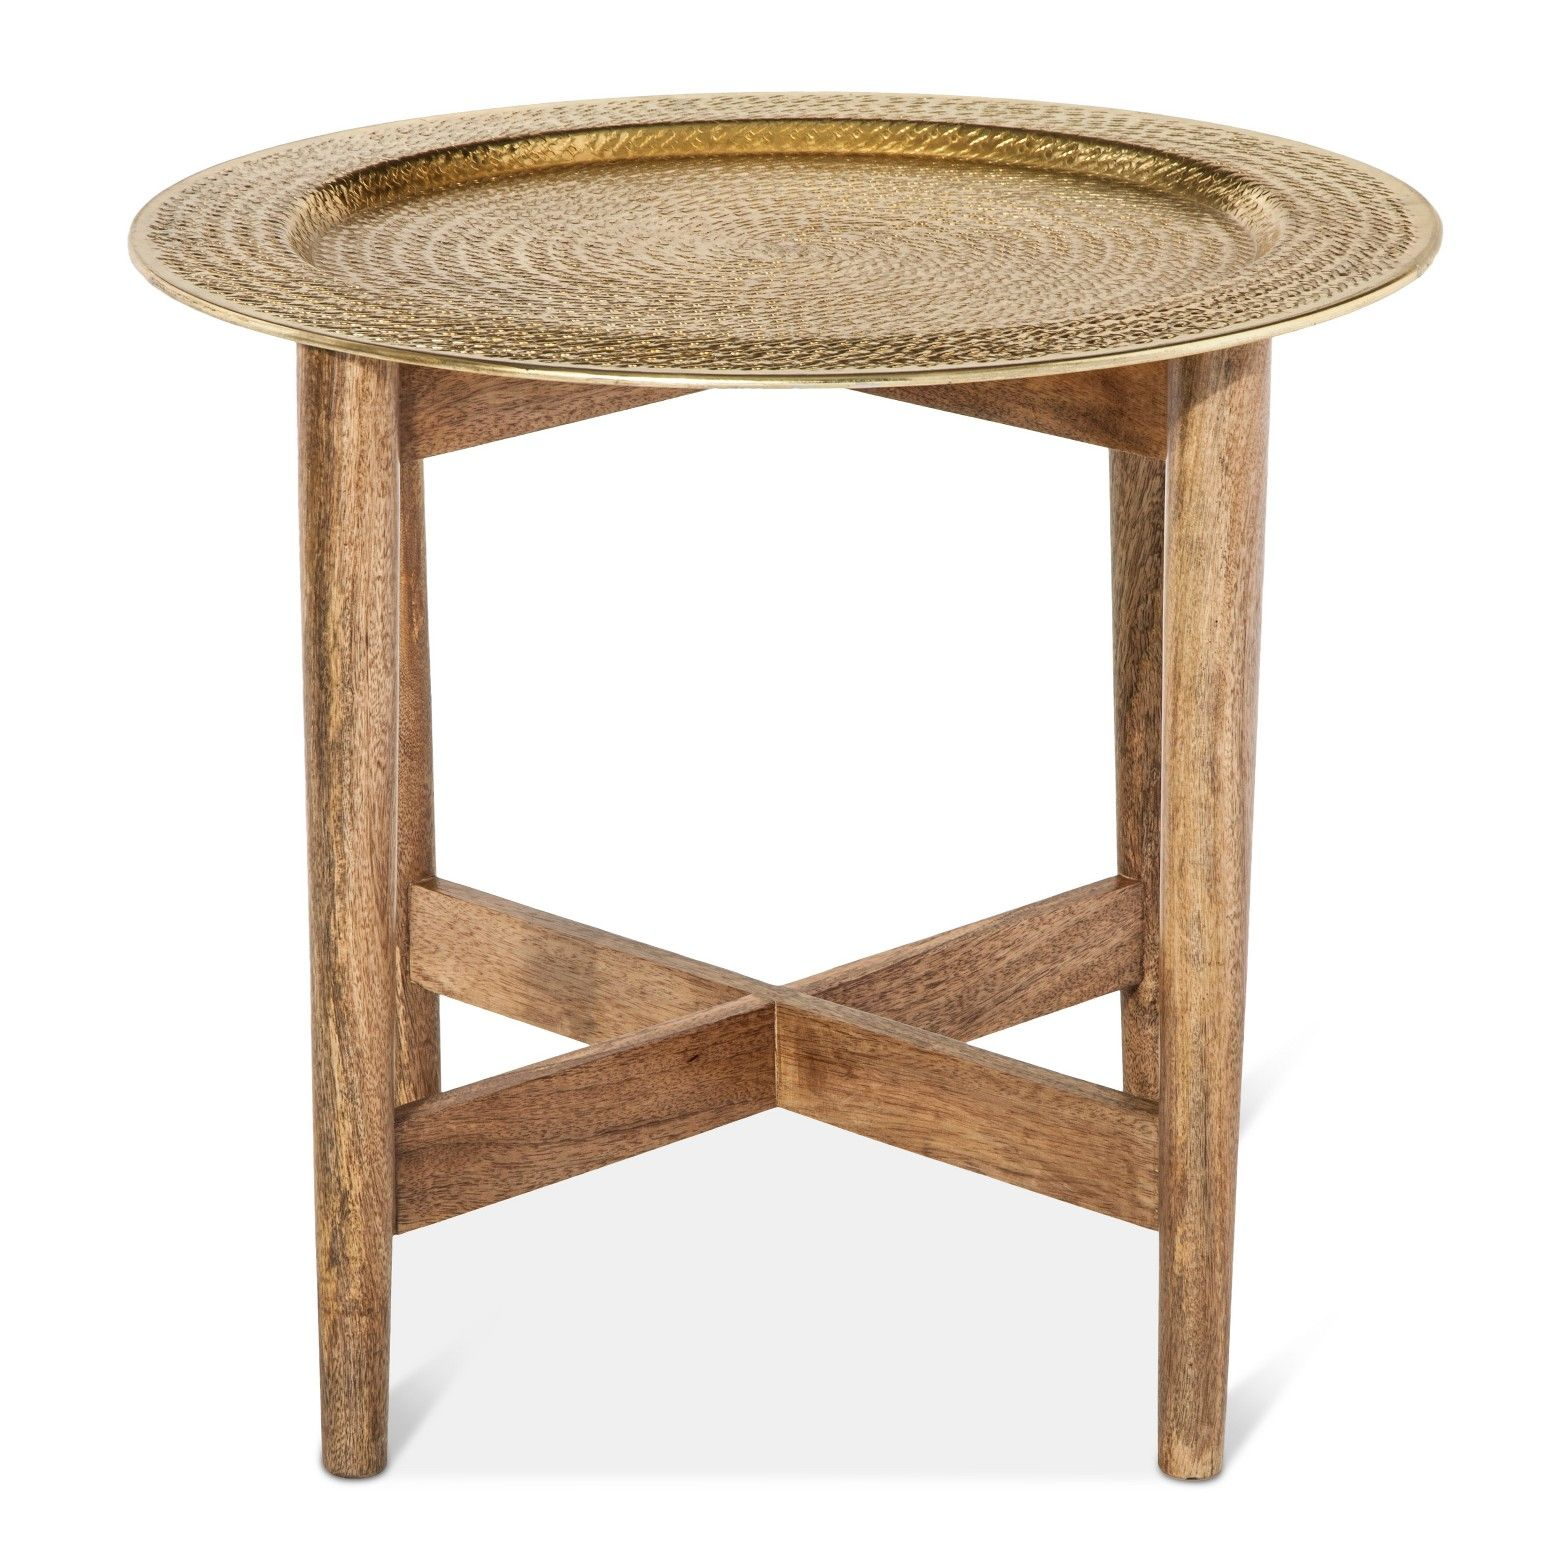 threshold gold metal top accent table front doors trays and mix your materials style with the this tray wicker patio chairs building barn door bedroom floor lamps chairside